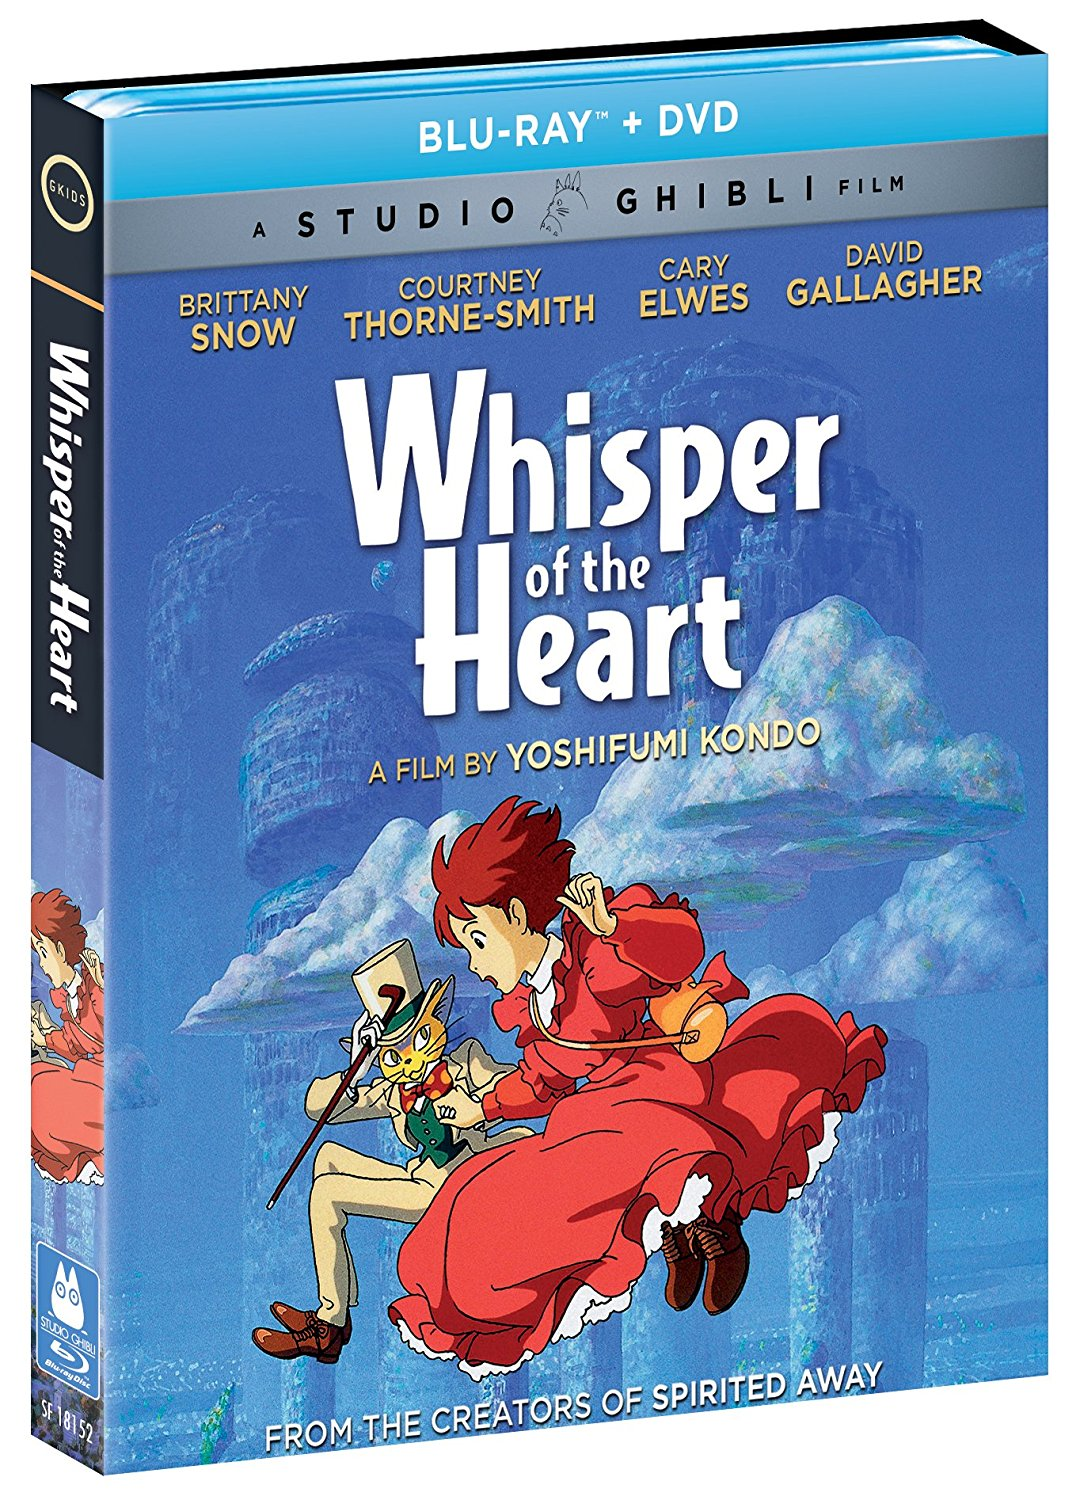 Whisper of the Heart Blu-ray/DVD